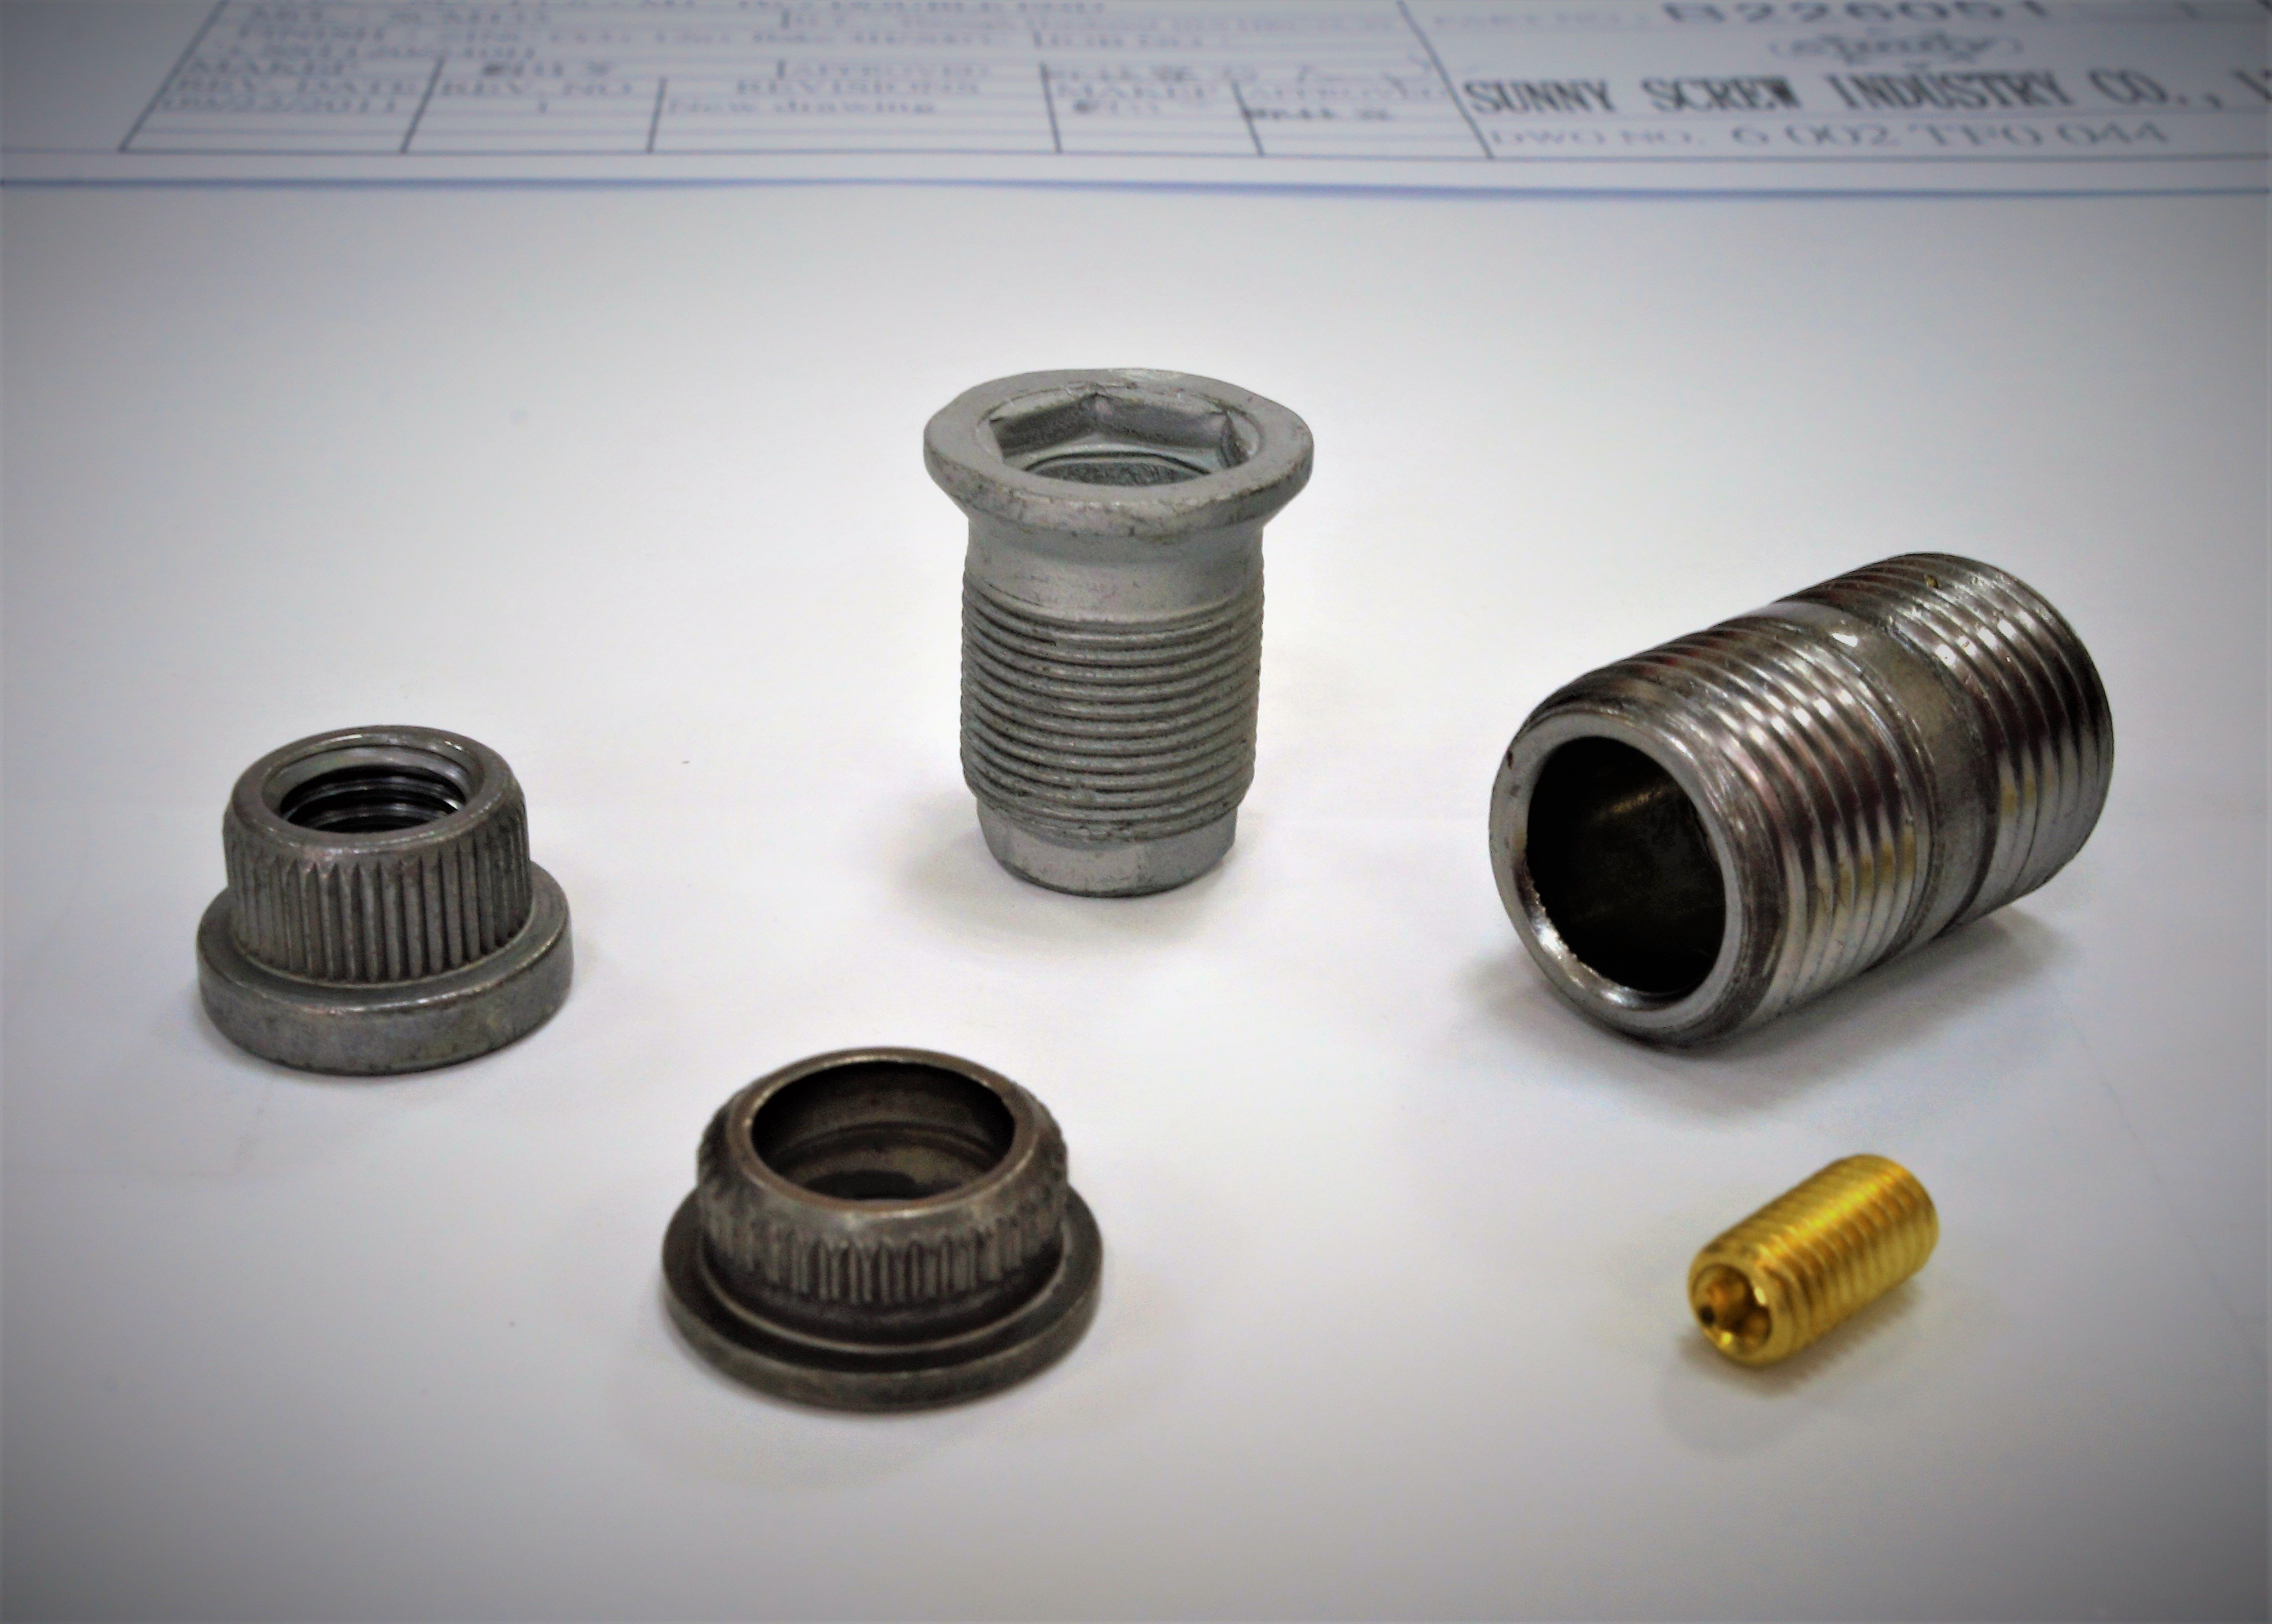 Truck / Trailer / Heavy Duty Nuts for Vehicle Fastener made by Sunny Screw Industry 三能螺栓工業股份有限公司 - MatchSupplier.com